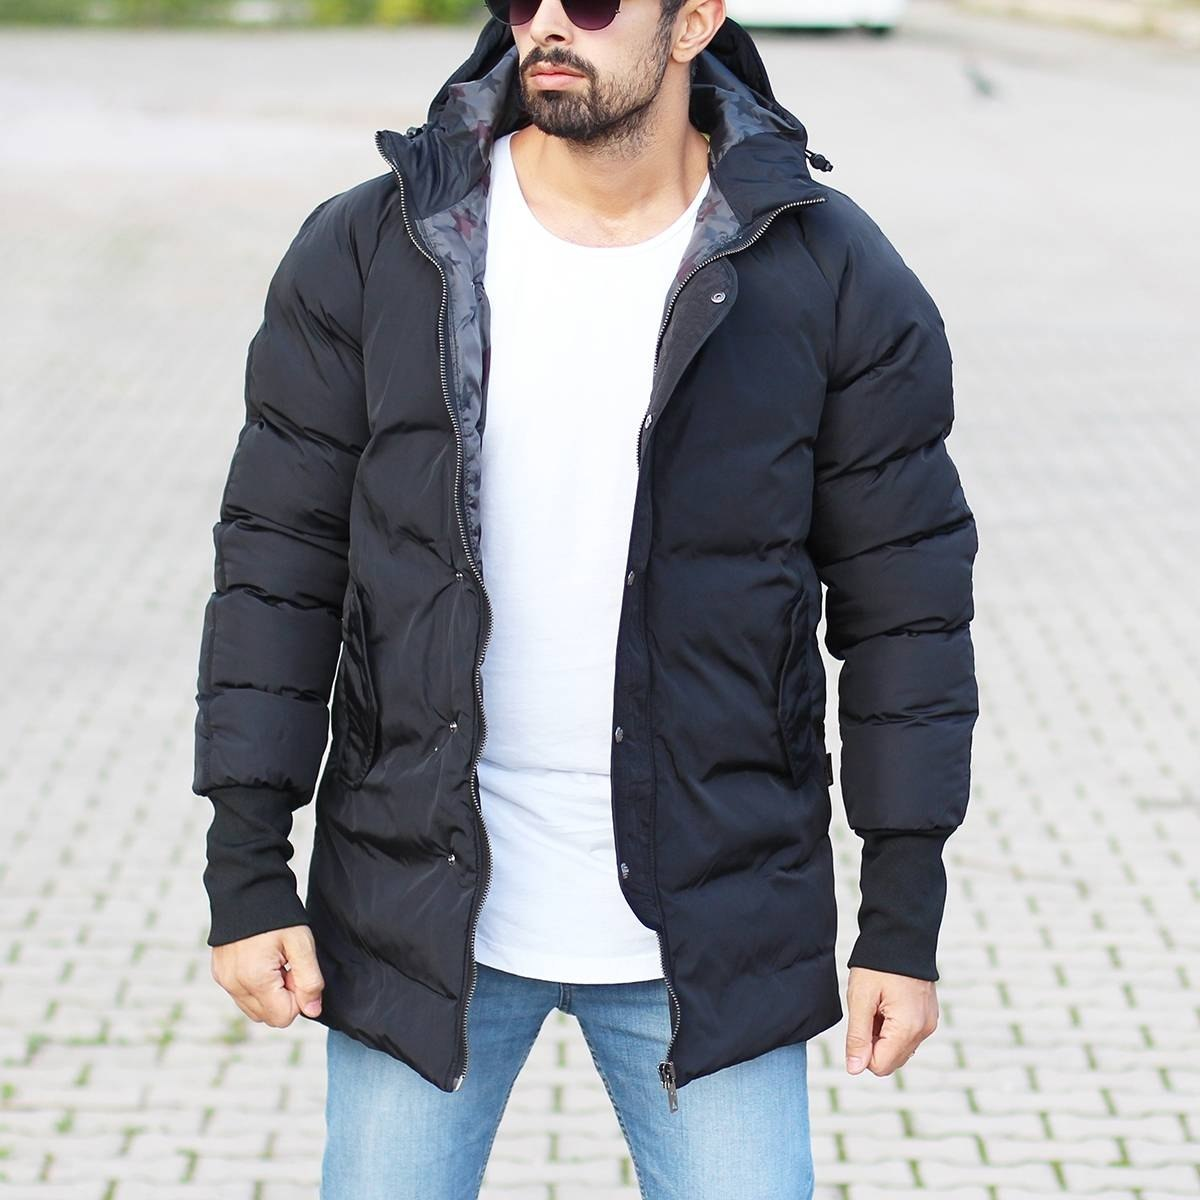 Hooded Puffer Winter Coat In Black